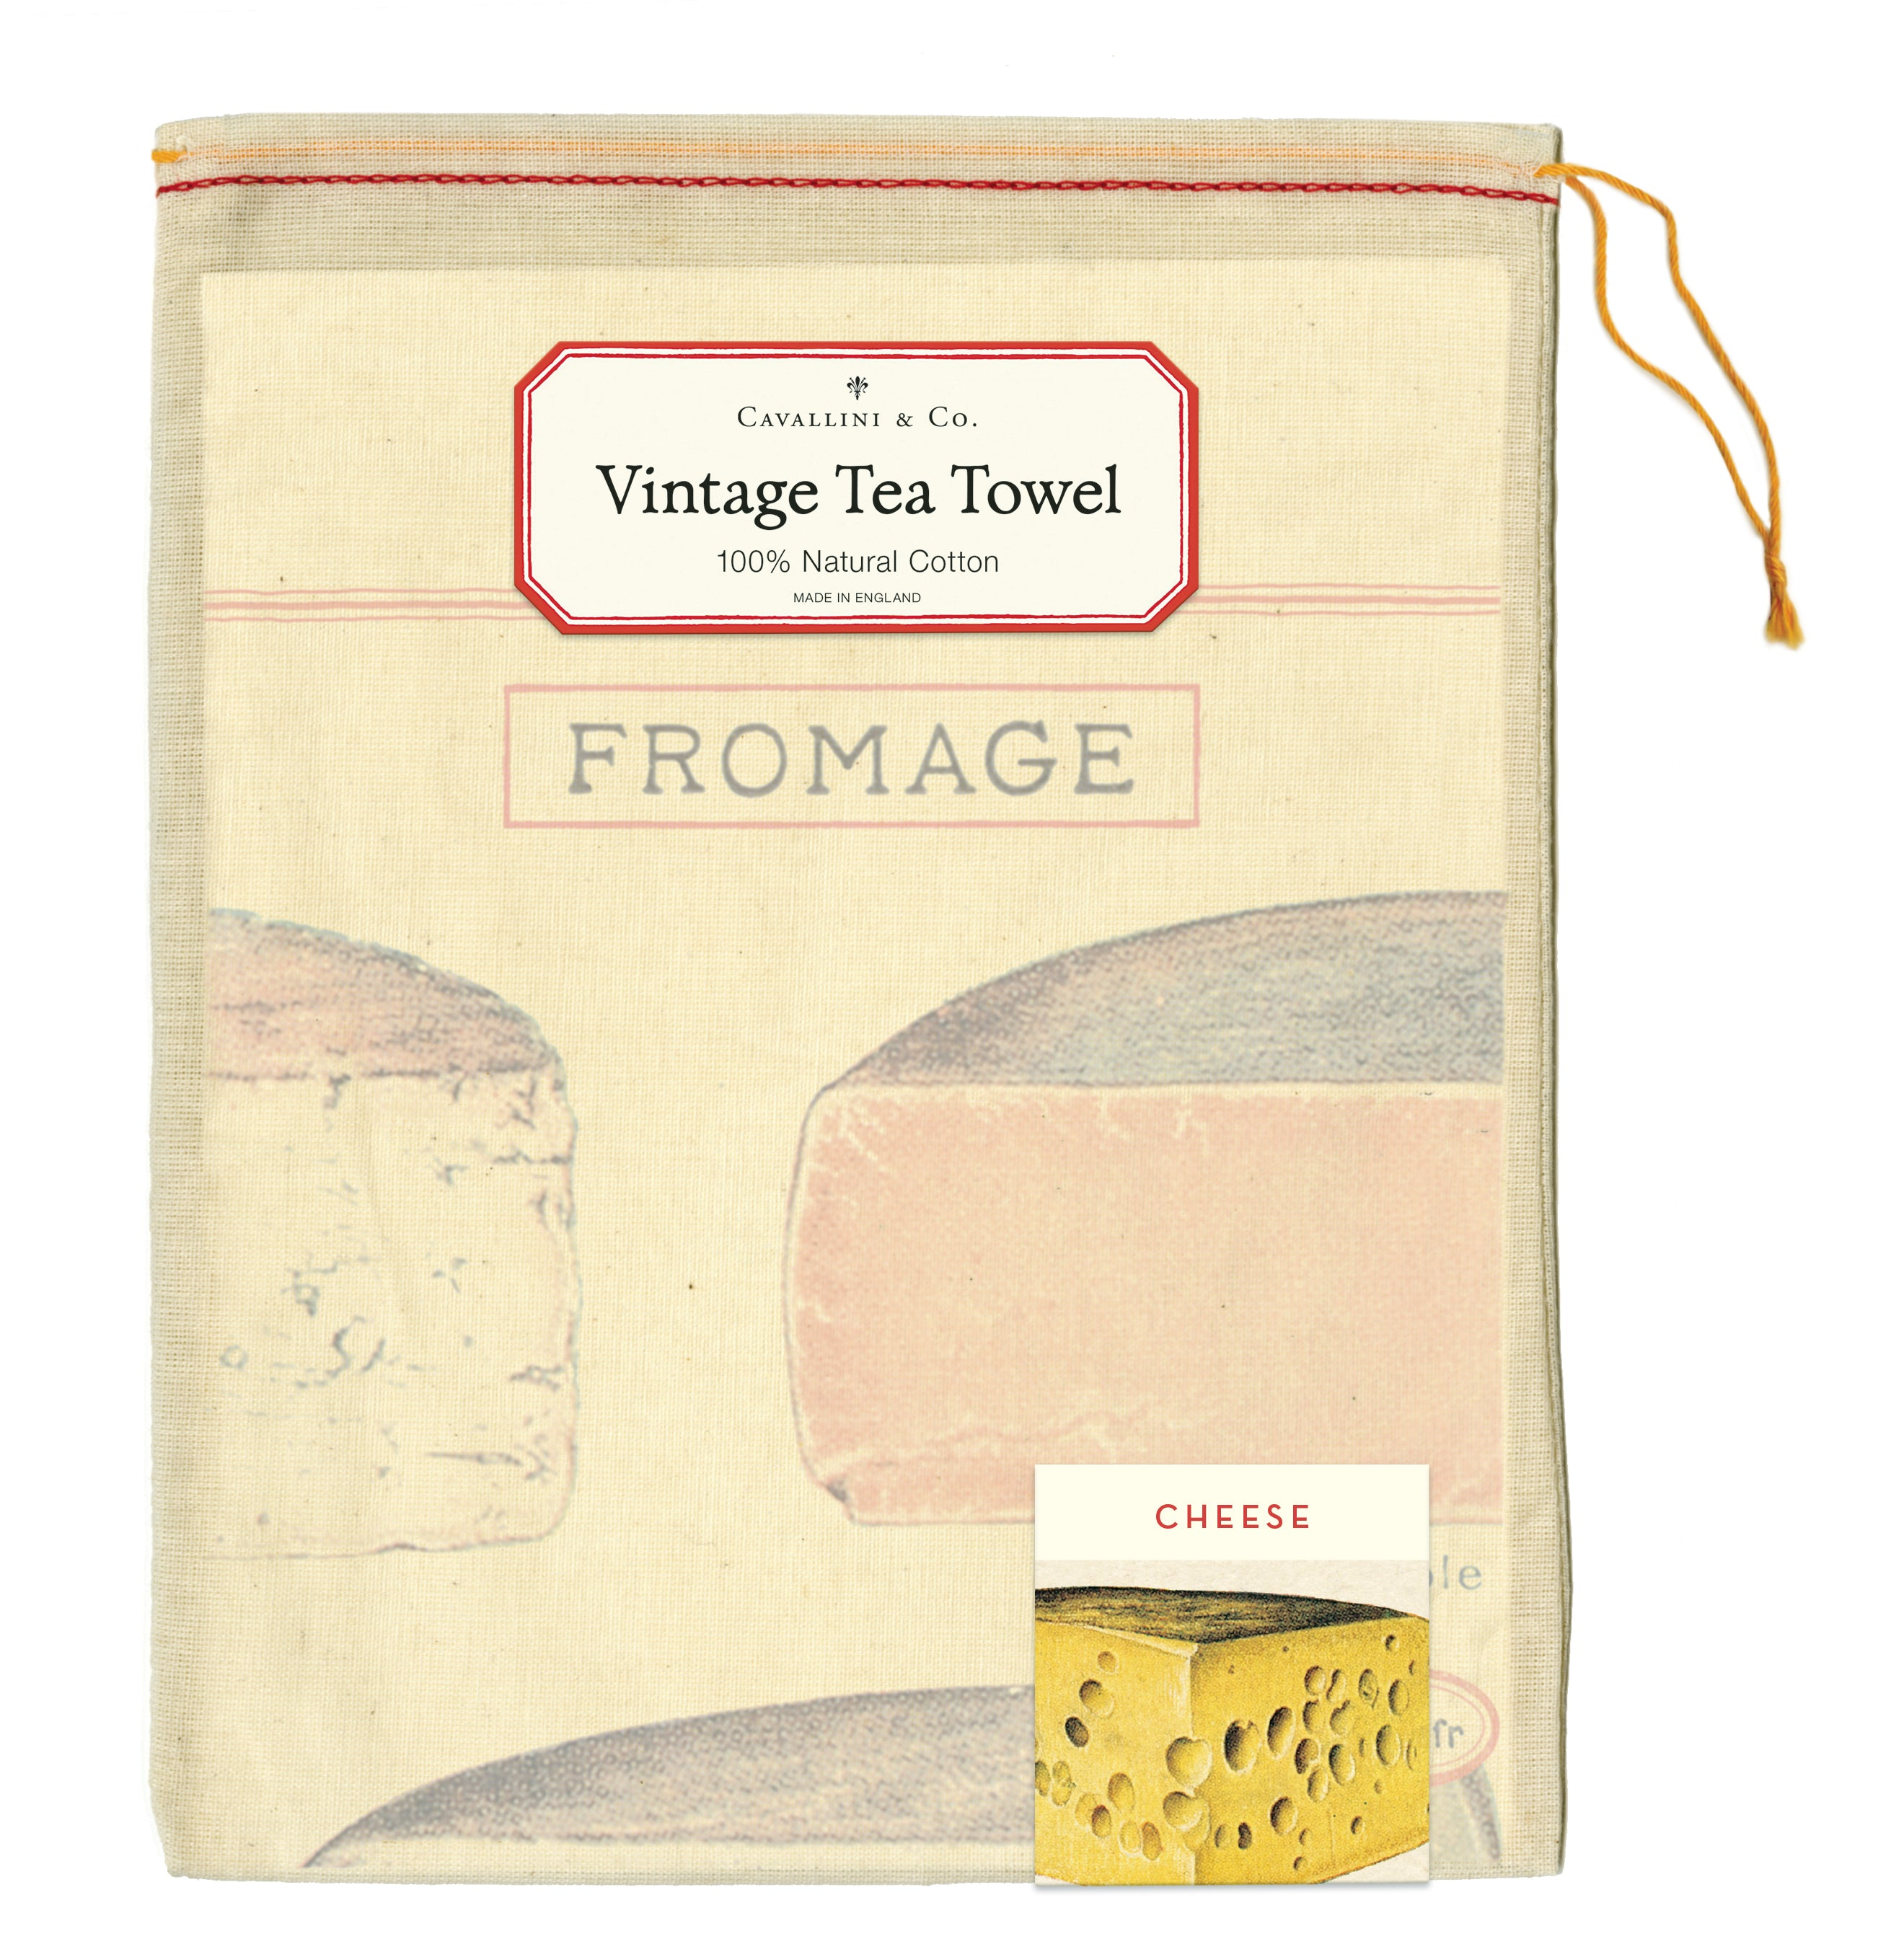 Cavallini Vintage Tea Towel - Cheese